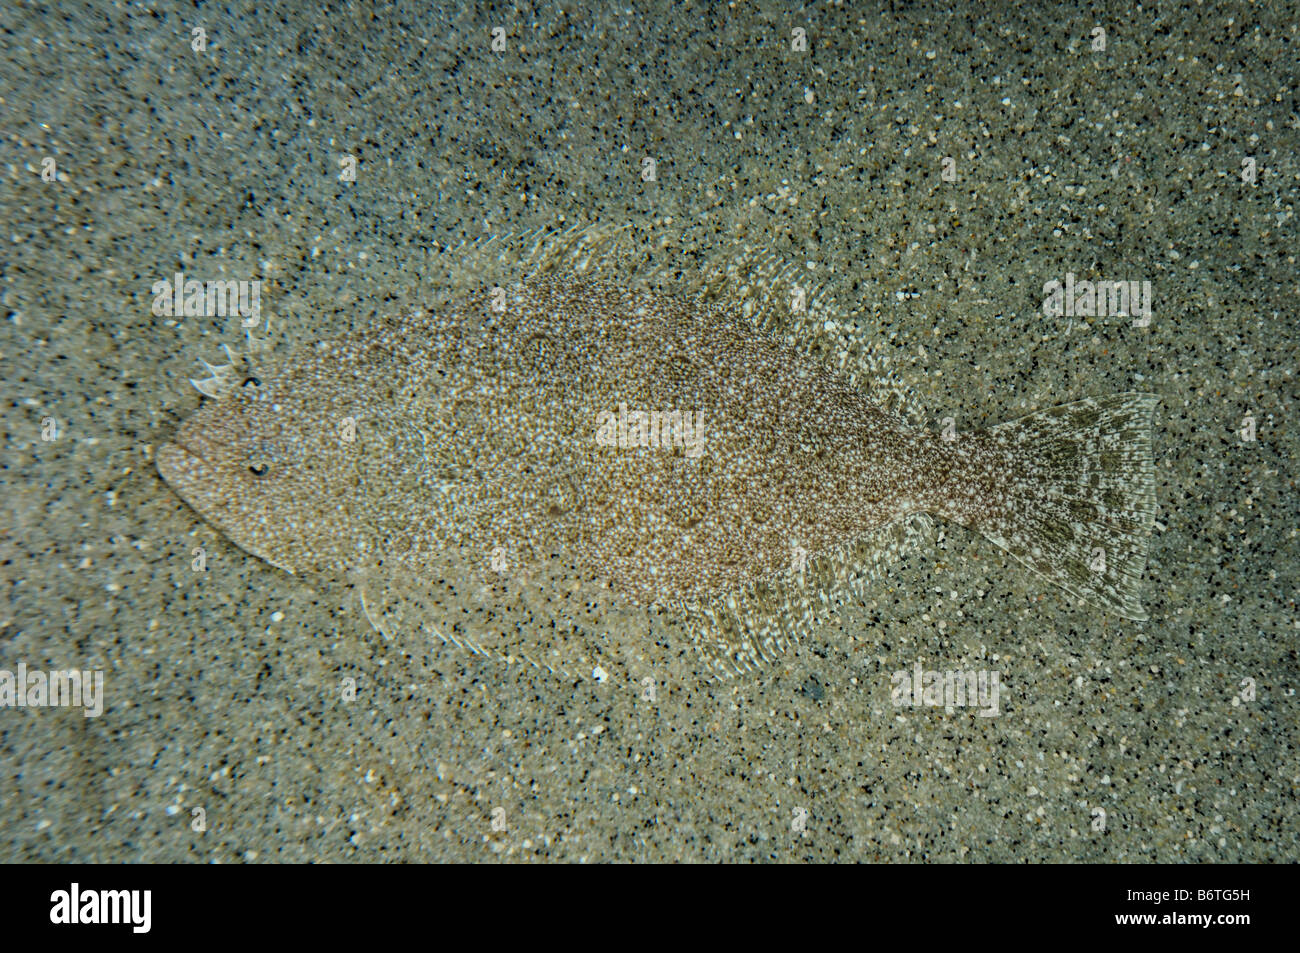 California halibut Paralichthys californicus captive - Stock Image